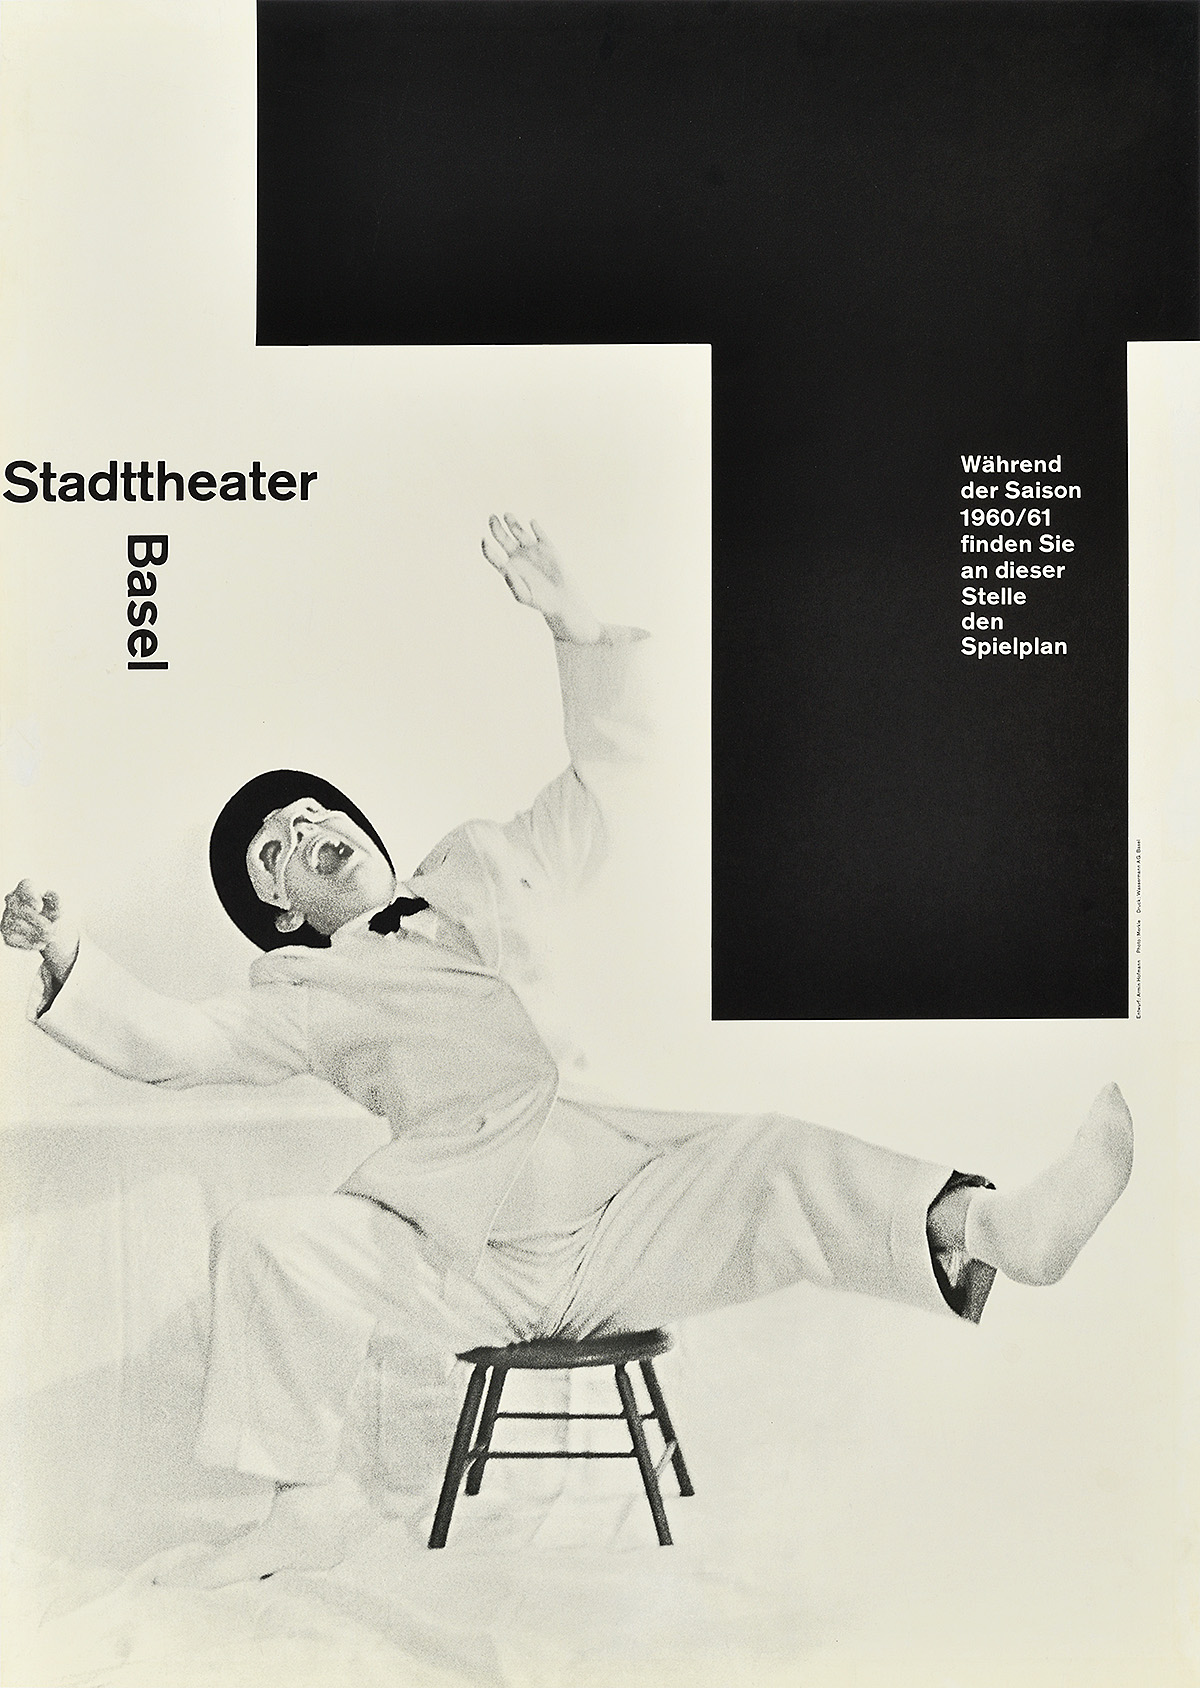 photographic poster of a man in a white costume laughing exaggeratedly on a small wooden chair